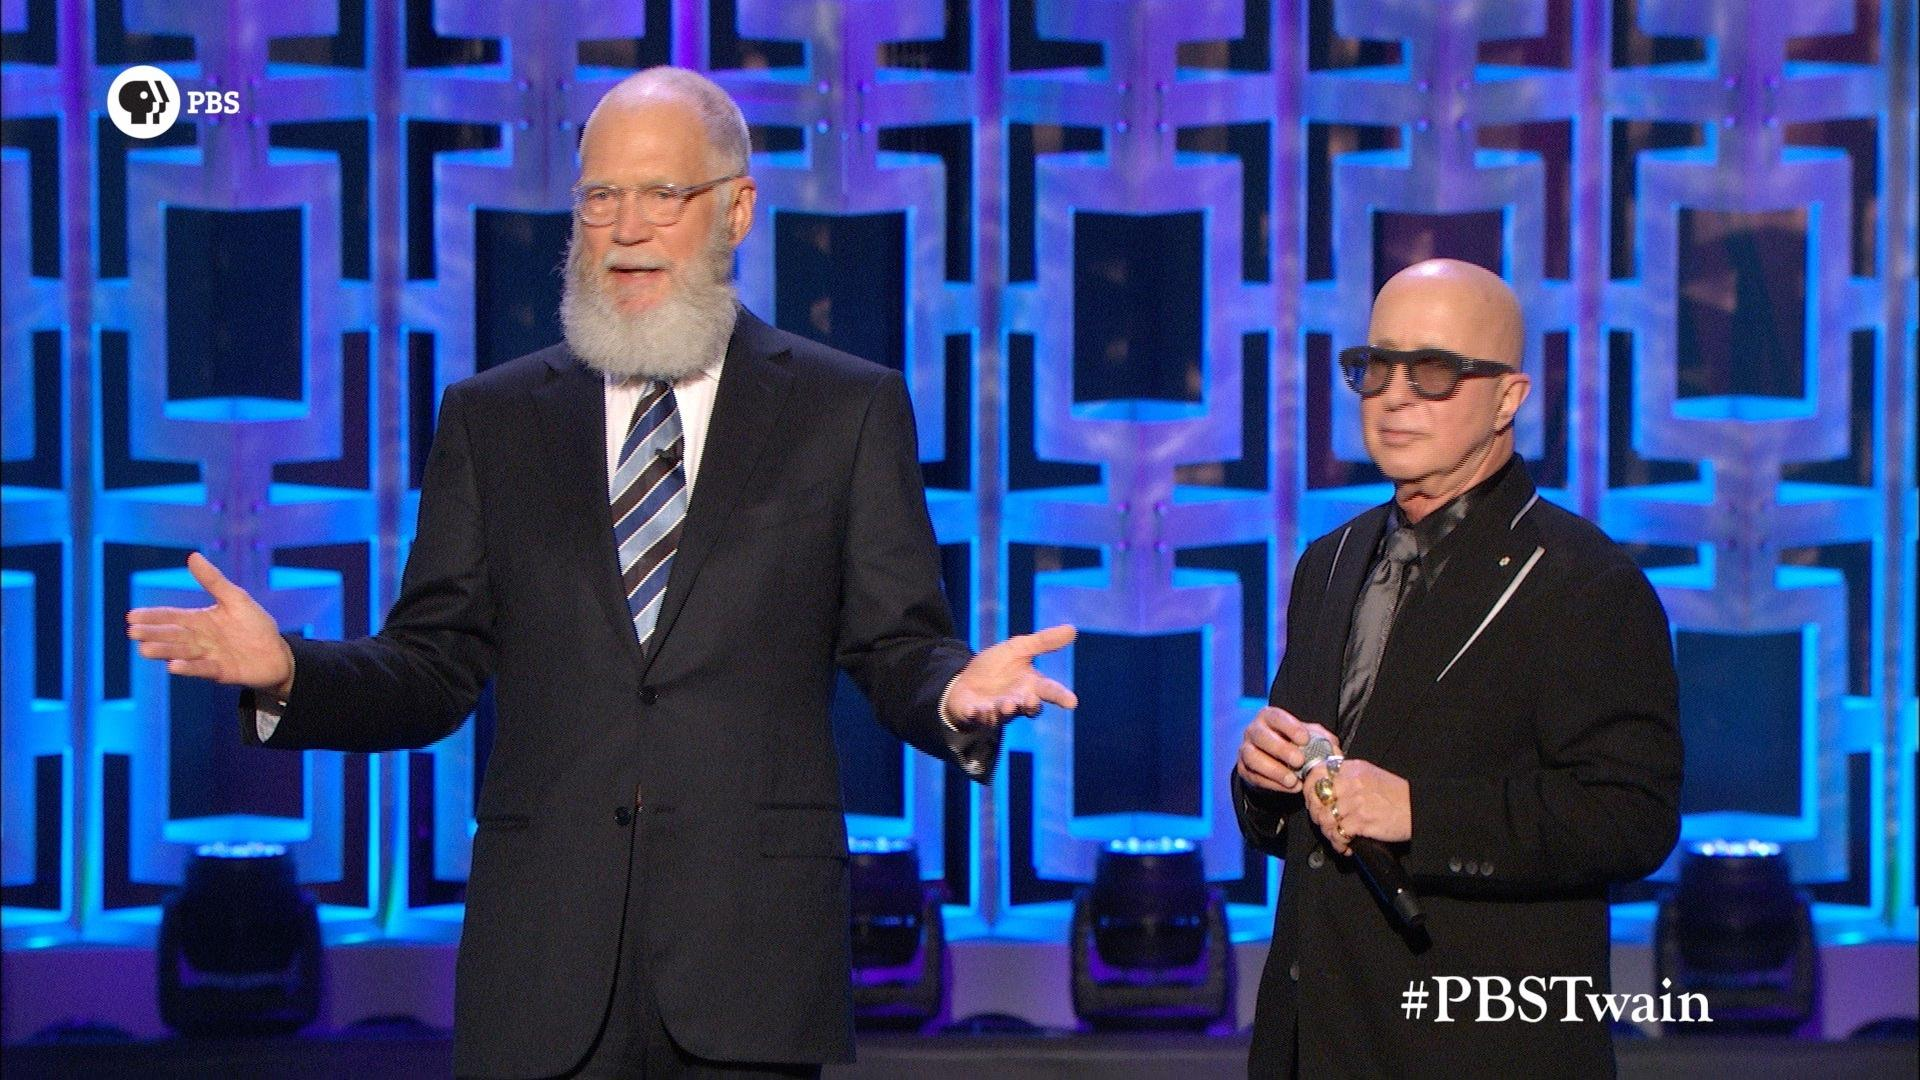 David Letterman Performs | Bill Murray: The Mark Twain Prize